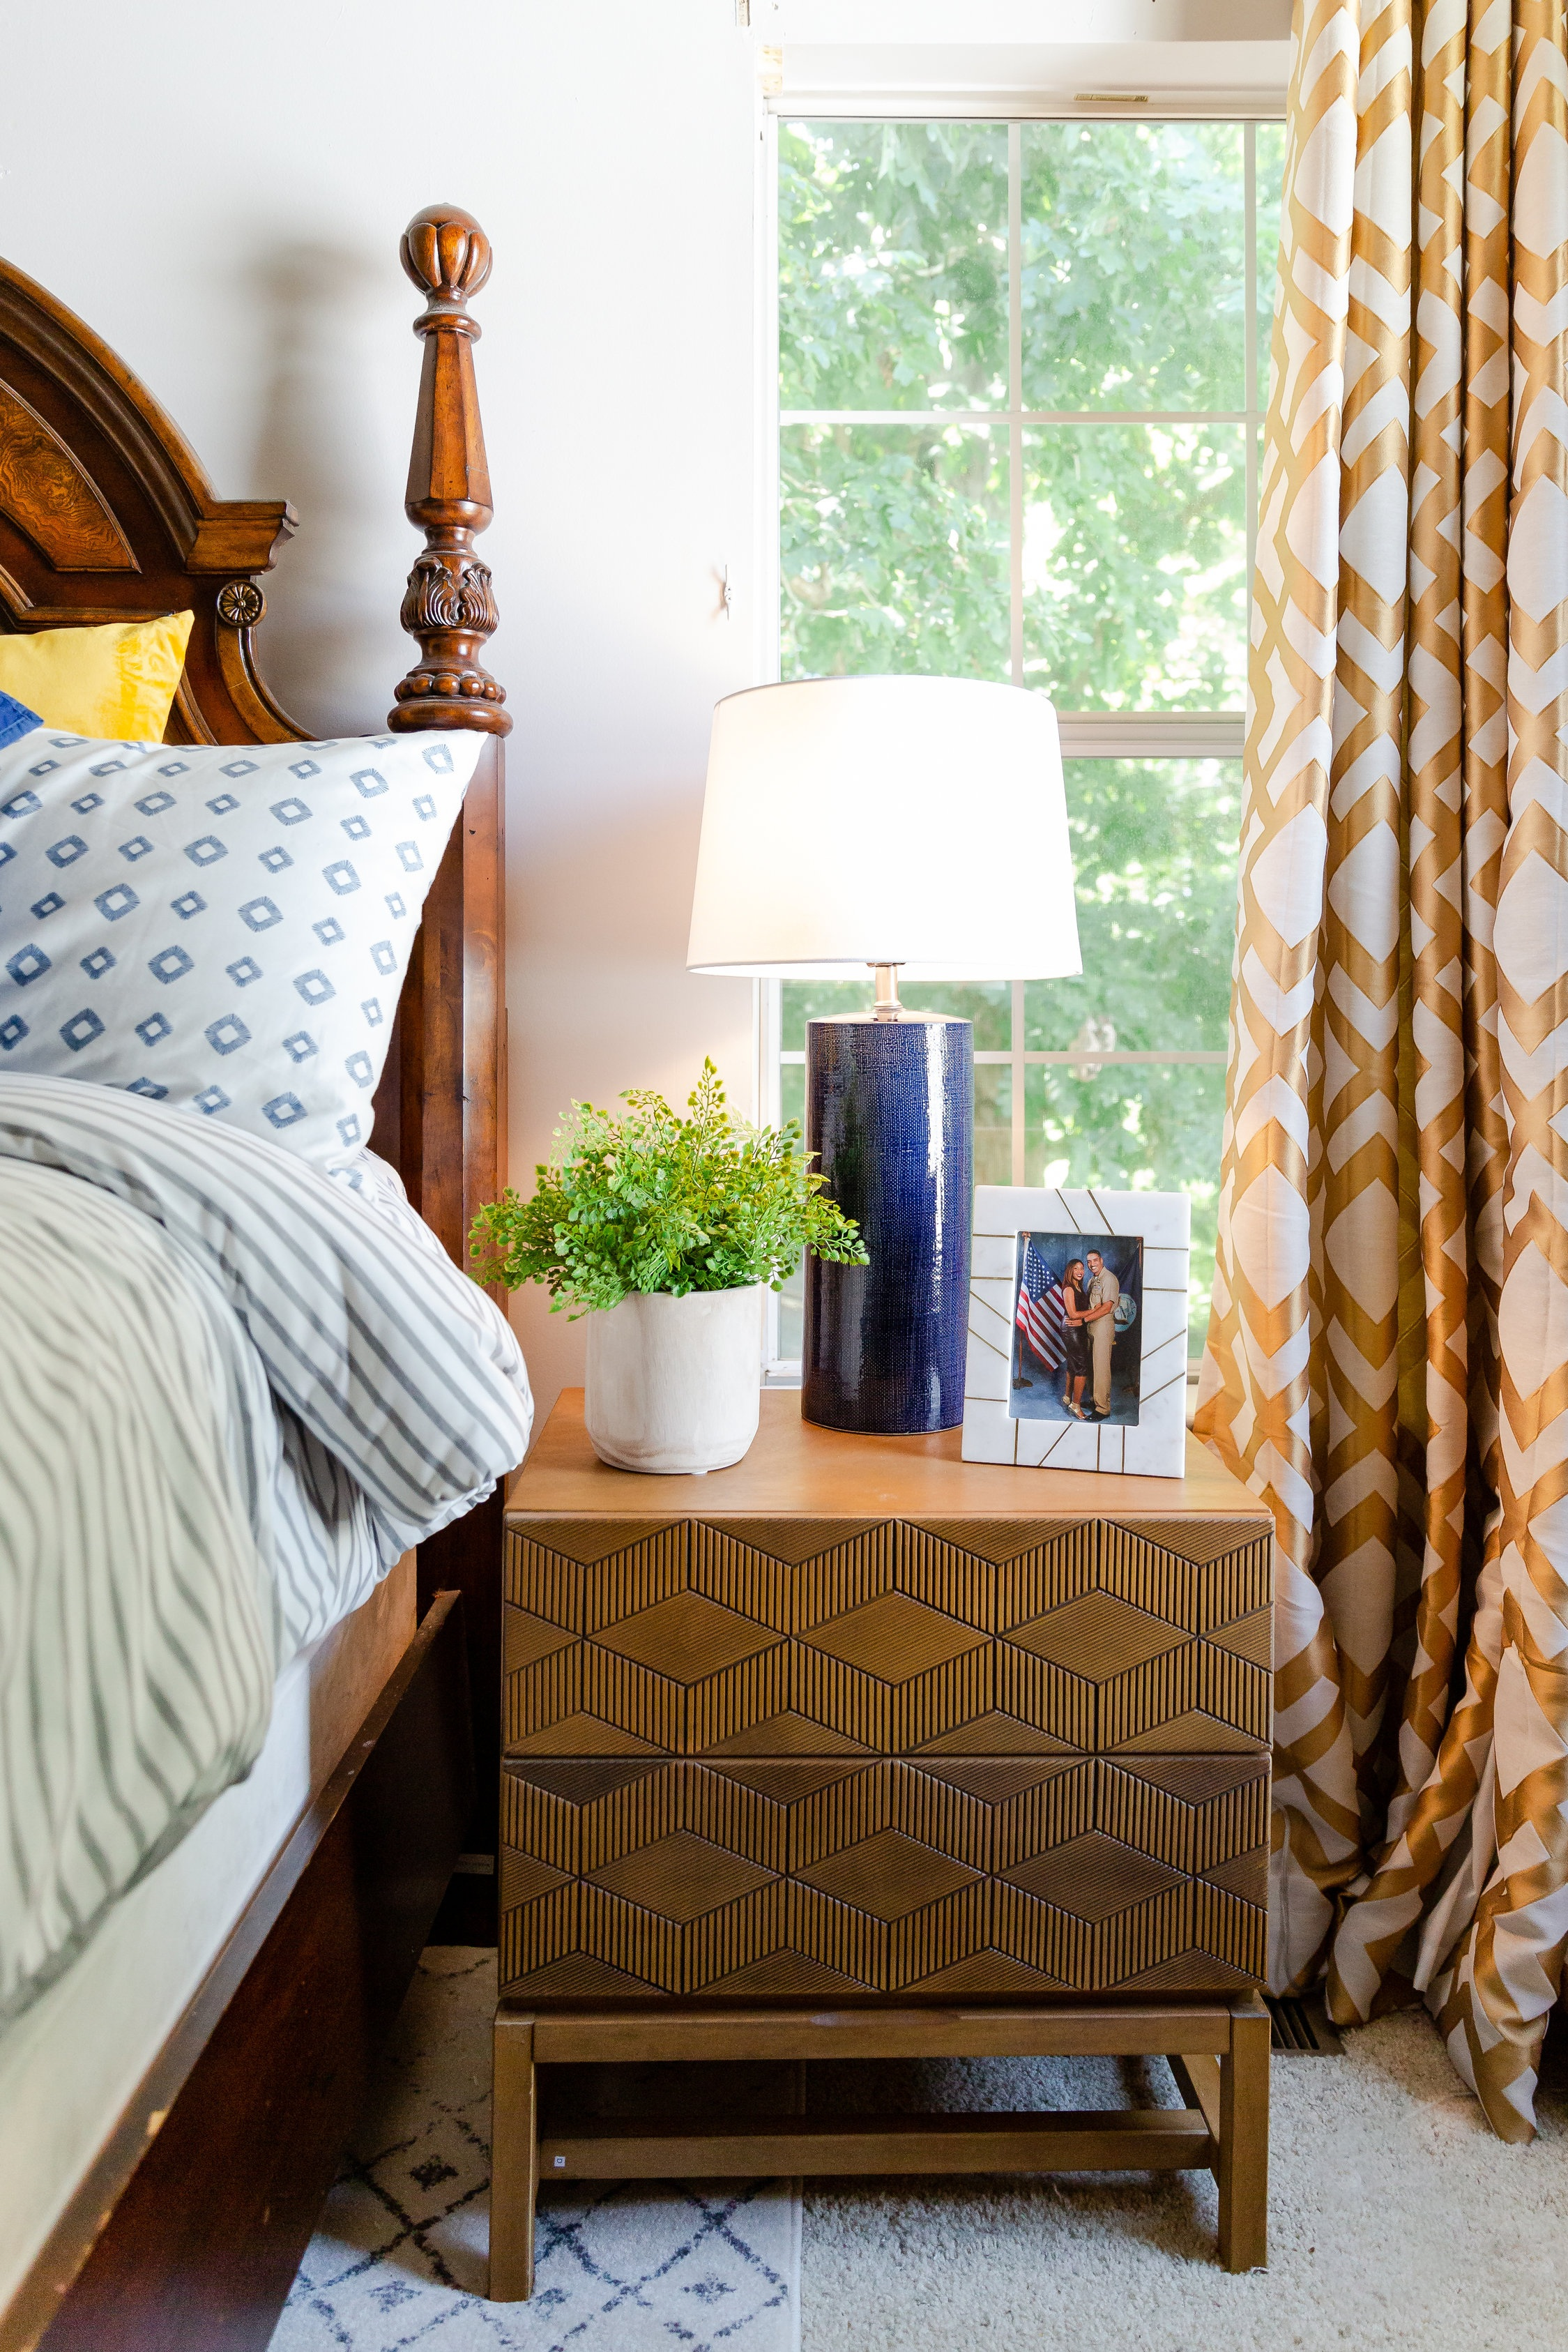 These side tables served a multitude of purposes such as: creating some balance (they anchor the bed), lighting things up (they're made of lighter wood), freshening things up (they feel a bit more modern than the existing furniture), and they provide storage!